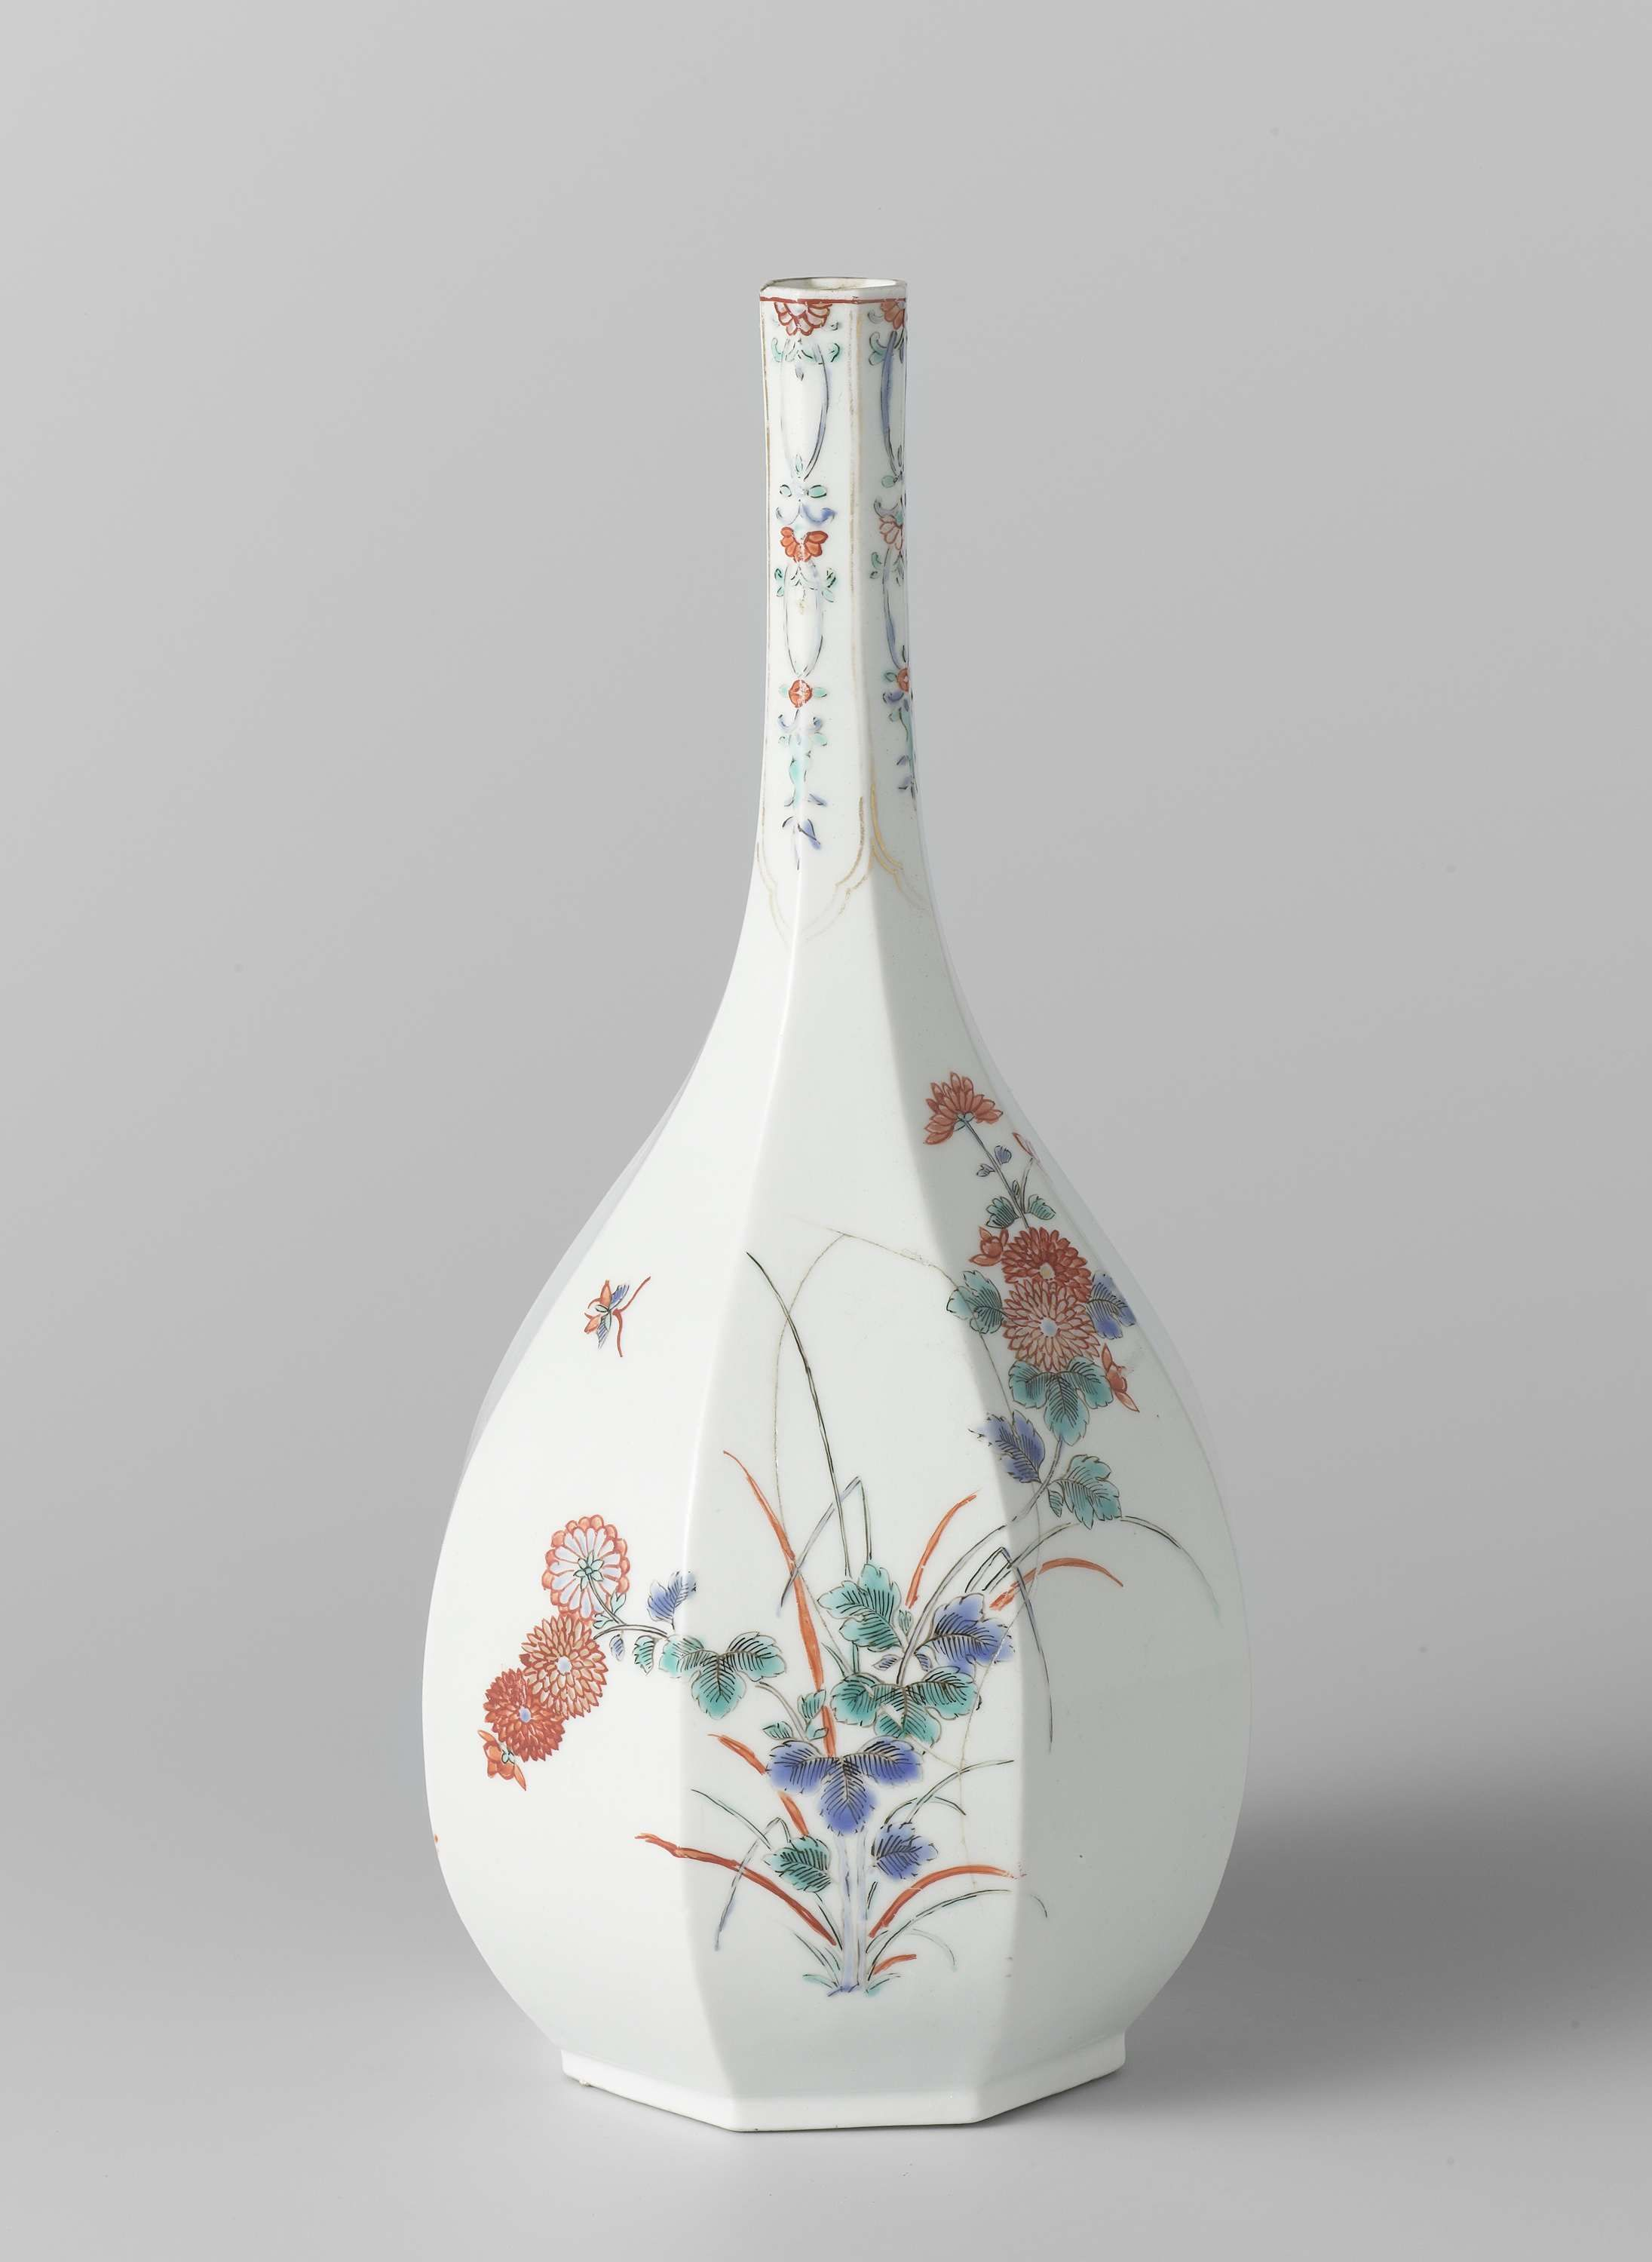 Bottle octagonal with long neck polychrome painted with ominaeshi